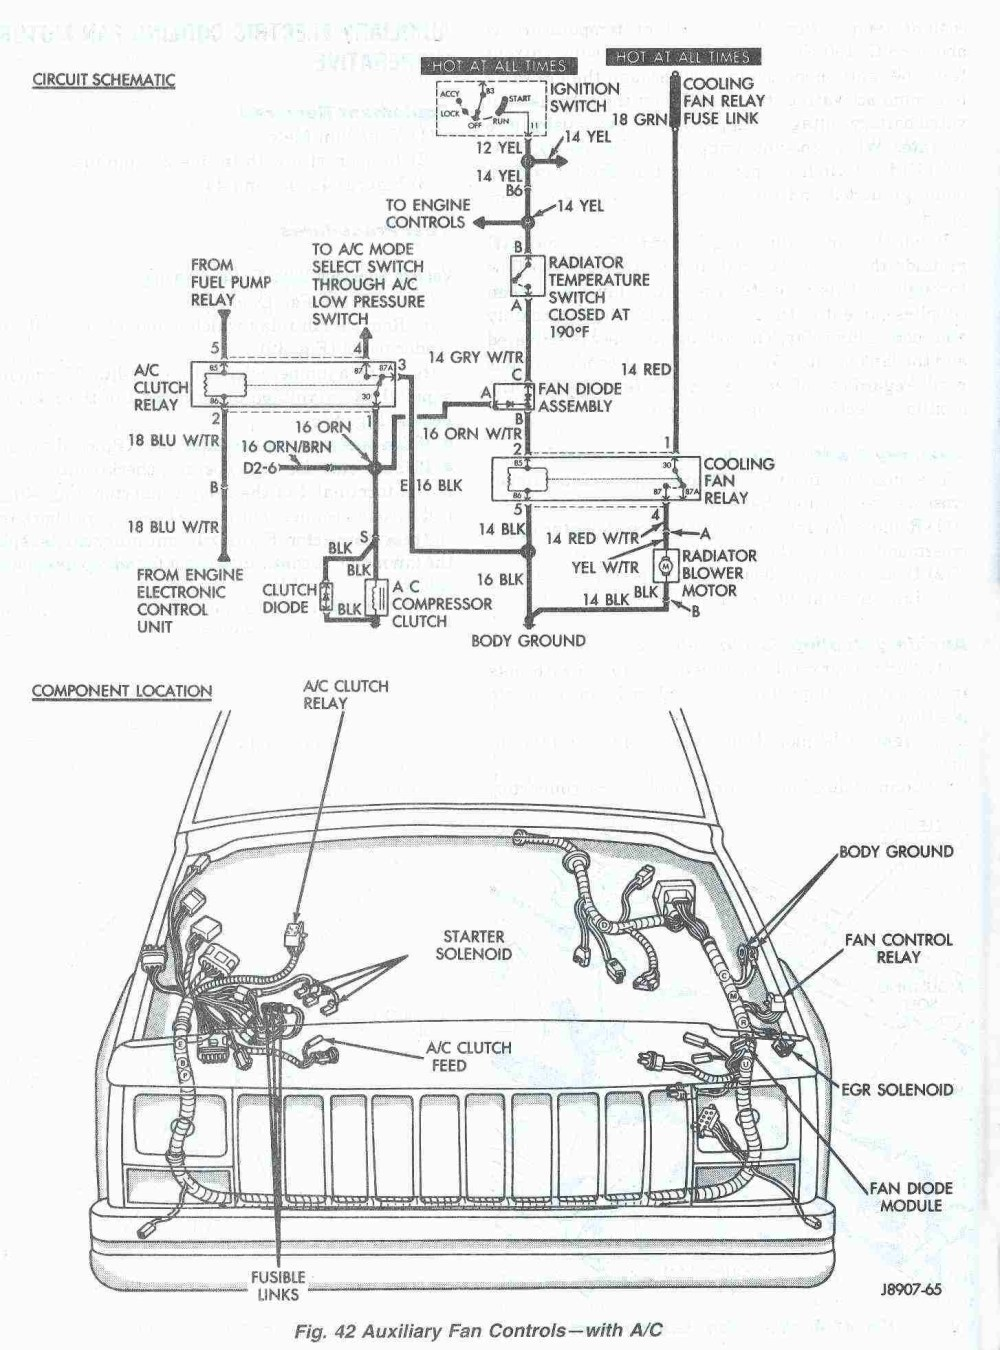 medium resolution of 2007 jeep grand cherokee engine diagram wiring diagram for ac unit thermostat along with jeep cherokee